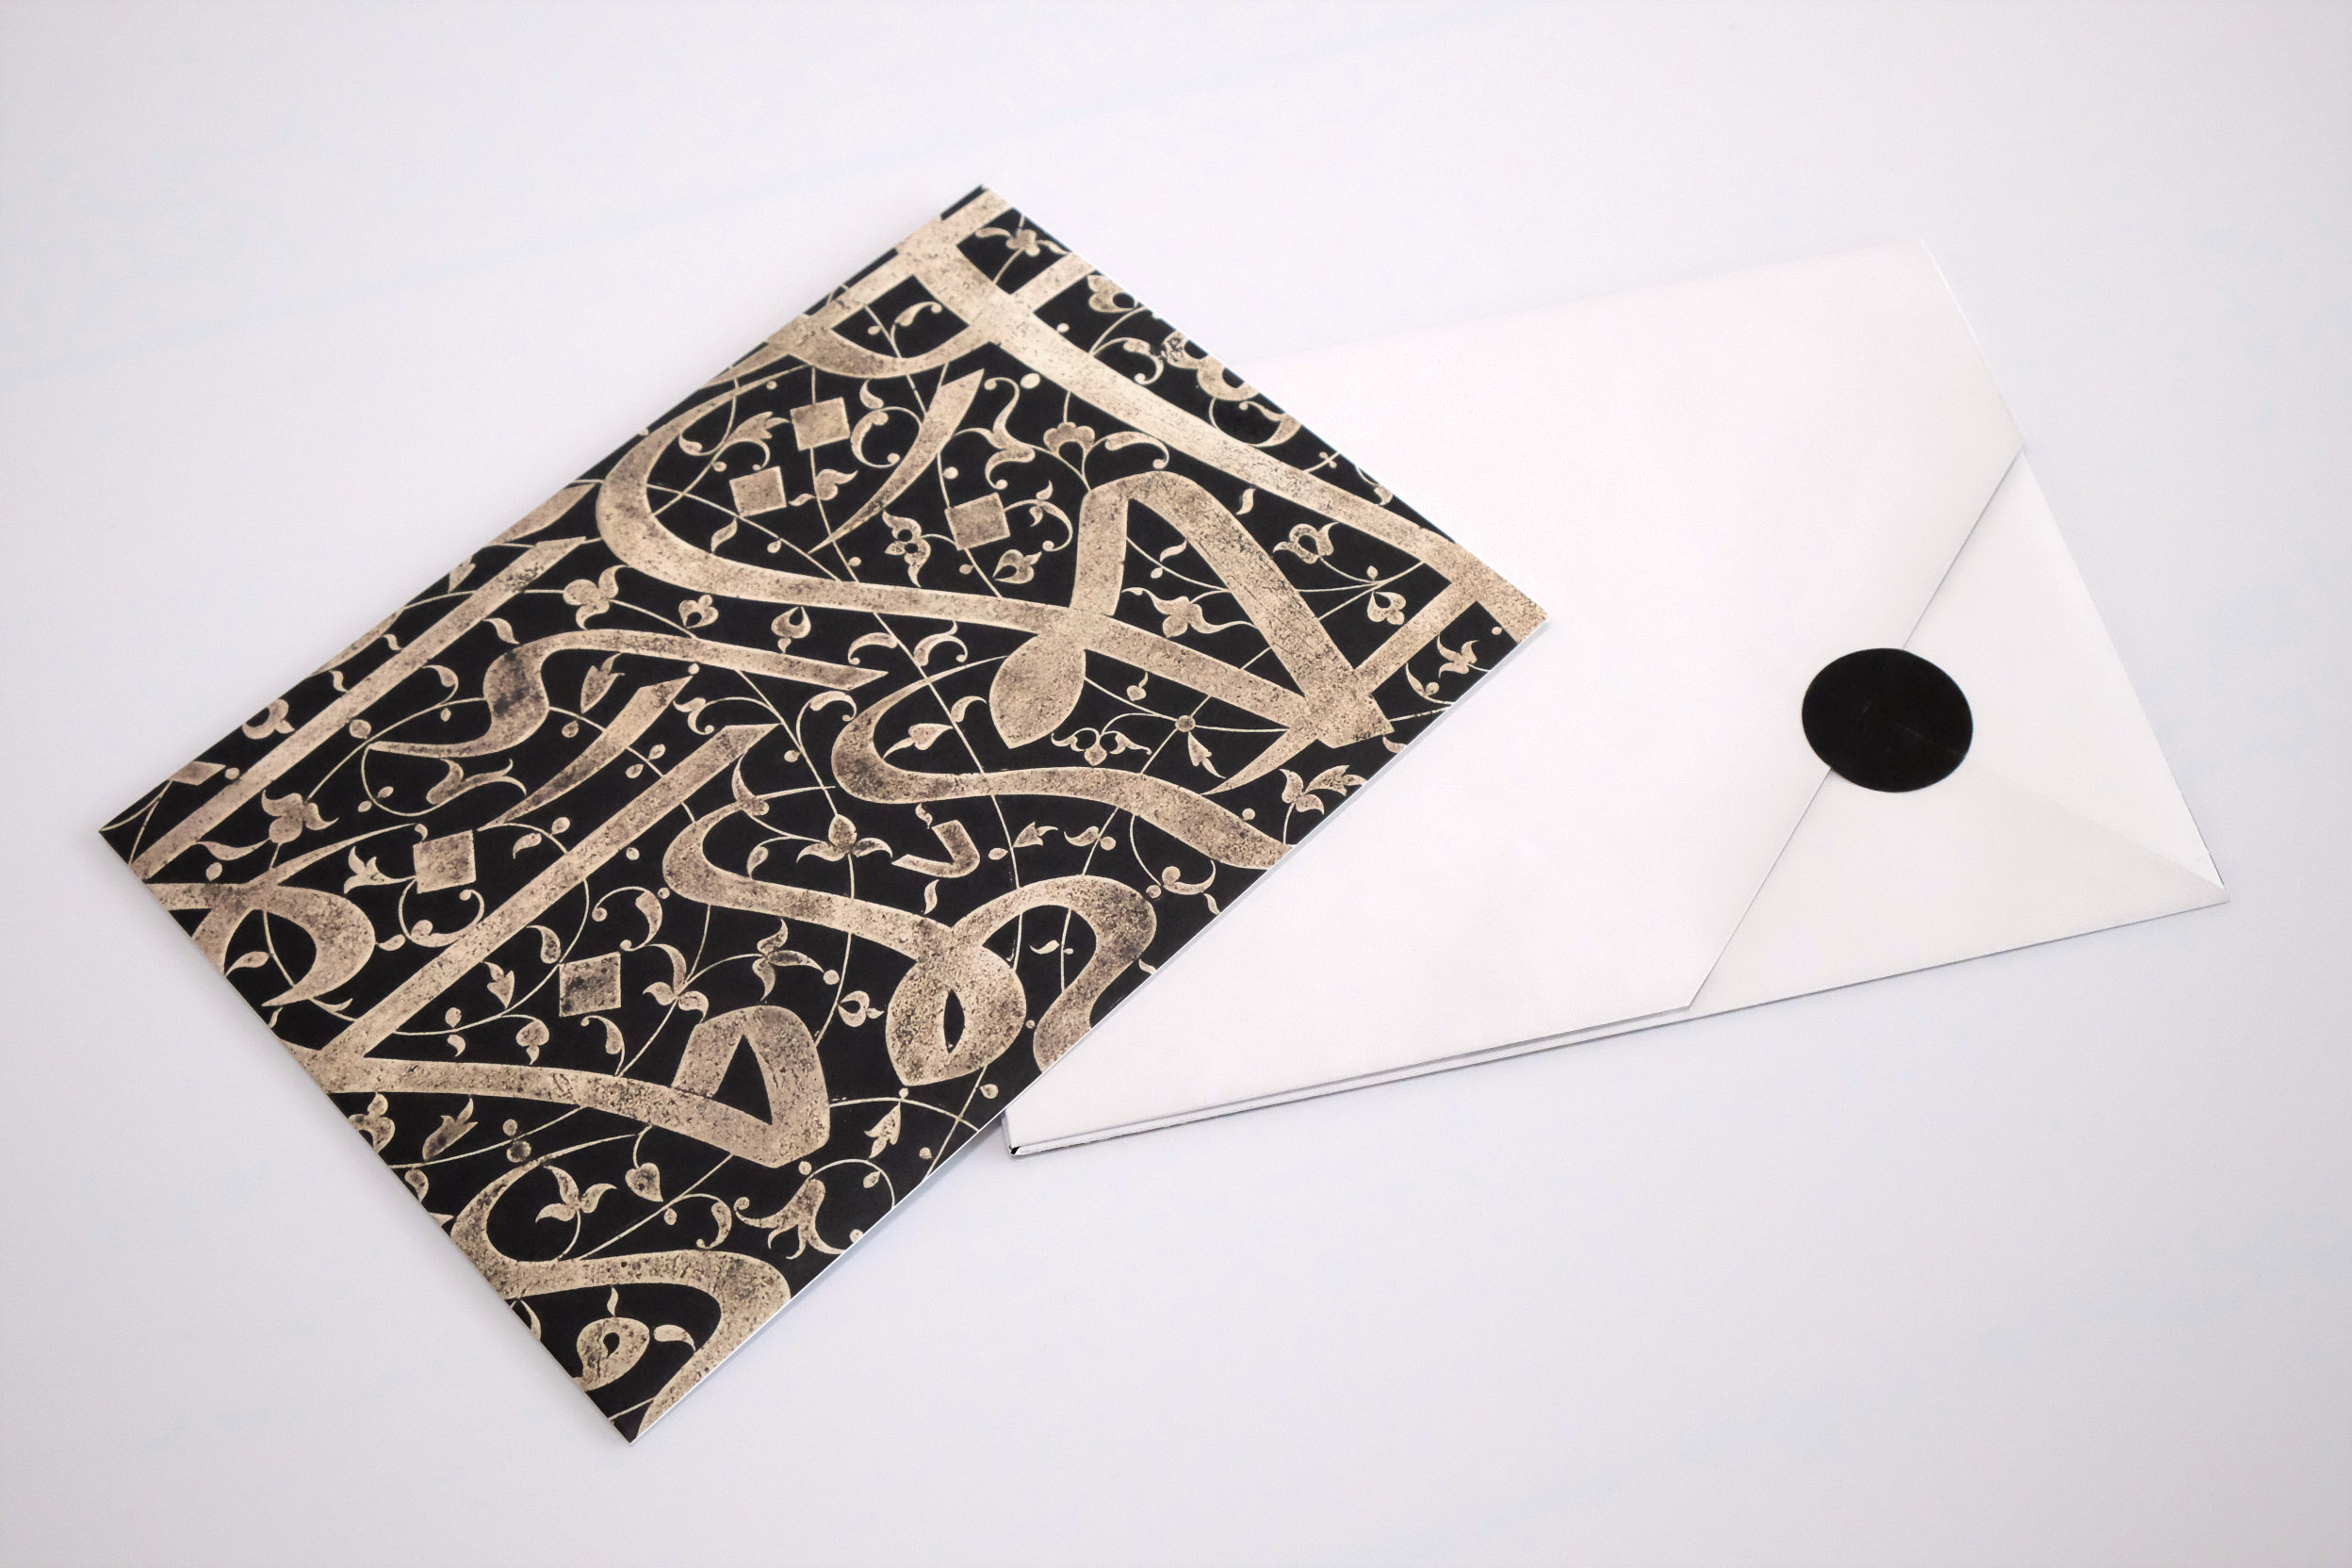 Islamic Gallery invitations   Print design, British Museum, 2018   The Islamic Gallery at the British Museum explores the wonders of the Islamic World. Margot Lombaert Studio designed invitations for the two private viewings. The design aims to surprise and create a sense of marvel while opening the invitation. The envelope unfolds into a poster showcasing a key object of the collection and allows the readers to experience its details. At the heart of the envelope, a thick, black card embellished with gold foiling gives to the guest all the event details.